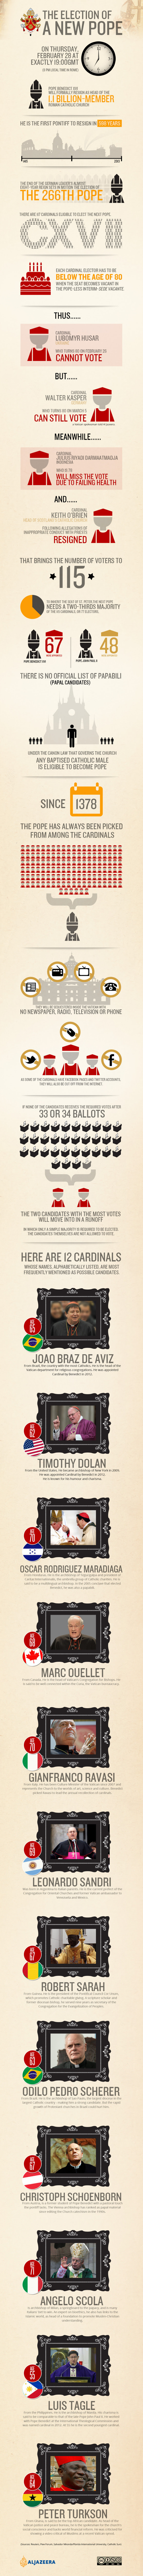 Picking new Pope from